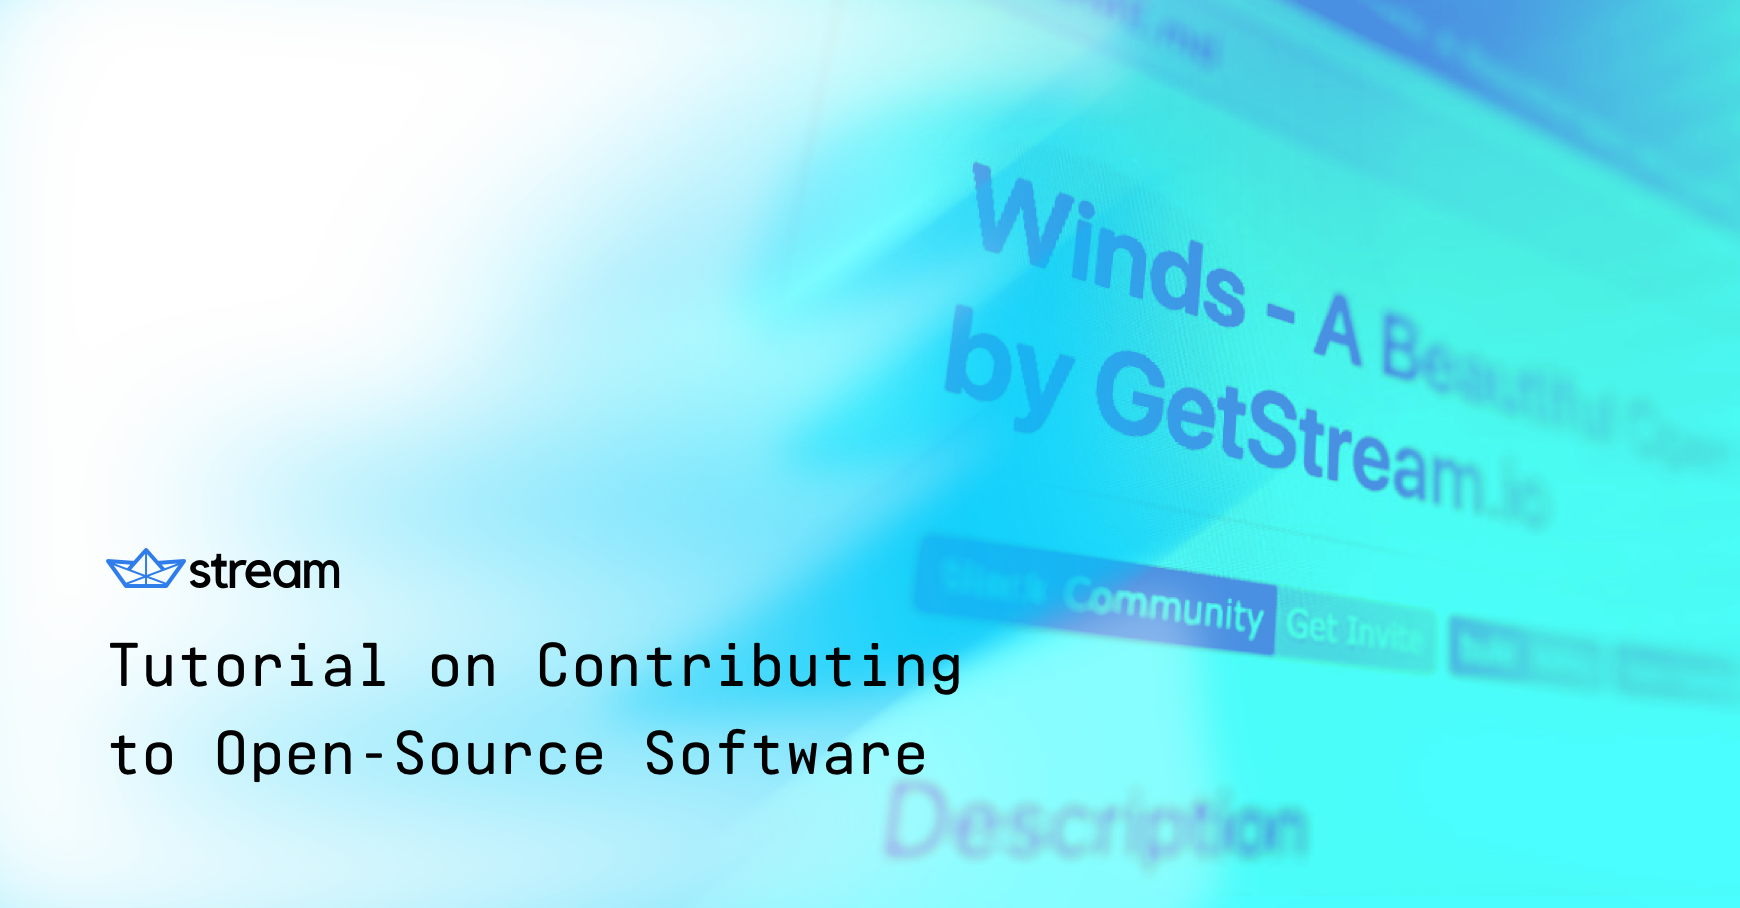 Winds – An in Depth Tutorial on Making Your First Contribution to